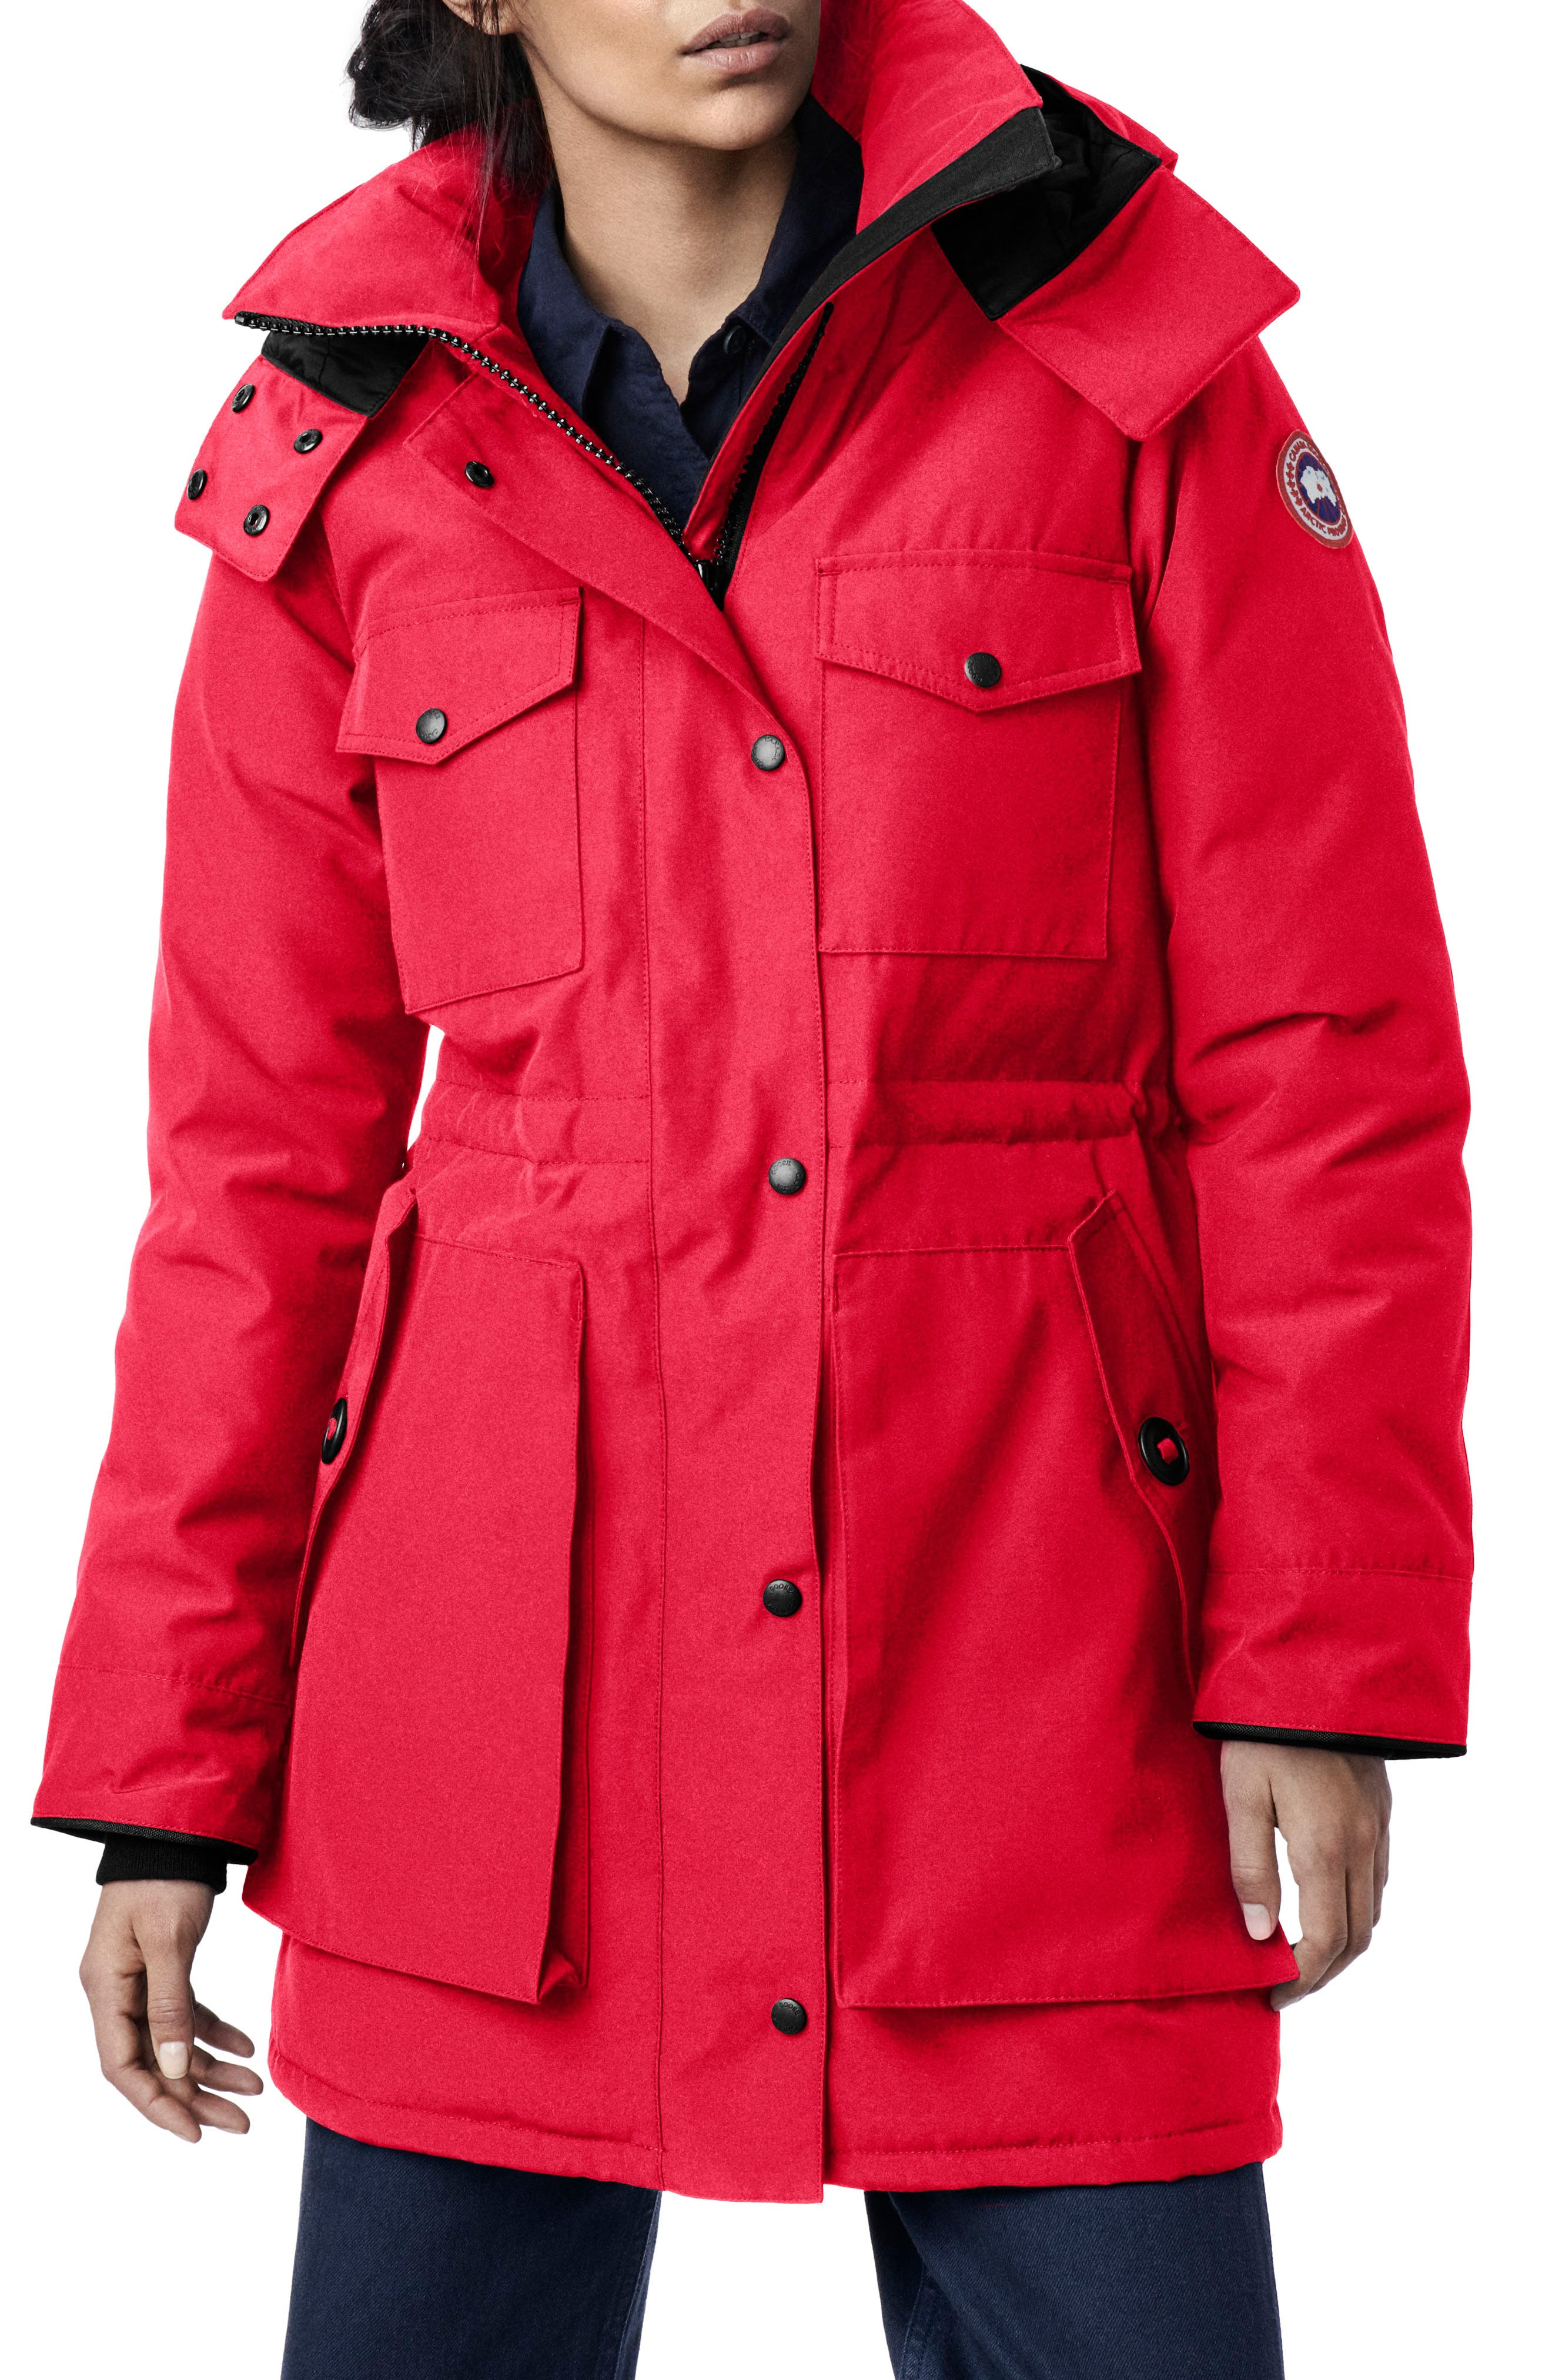 Canada Goose Gabriola Water Resistant Arctic Tech 625 Fill Power Down Parka, (6-8) - Red